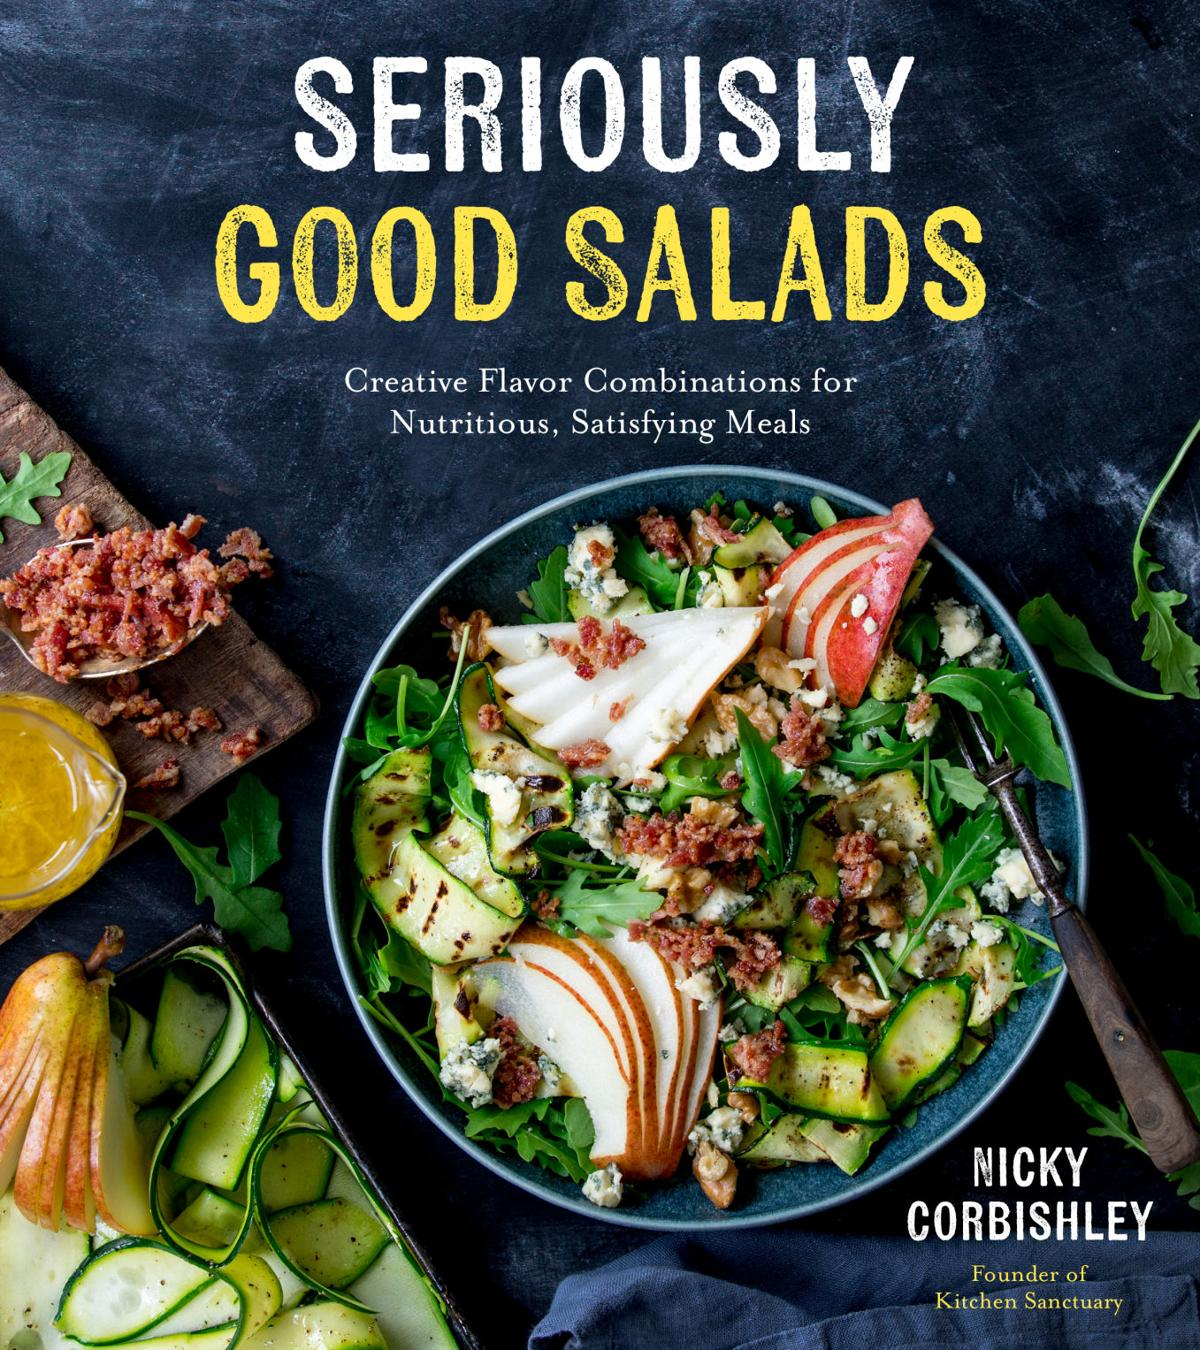 Seriously Good Salads cover.jpg